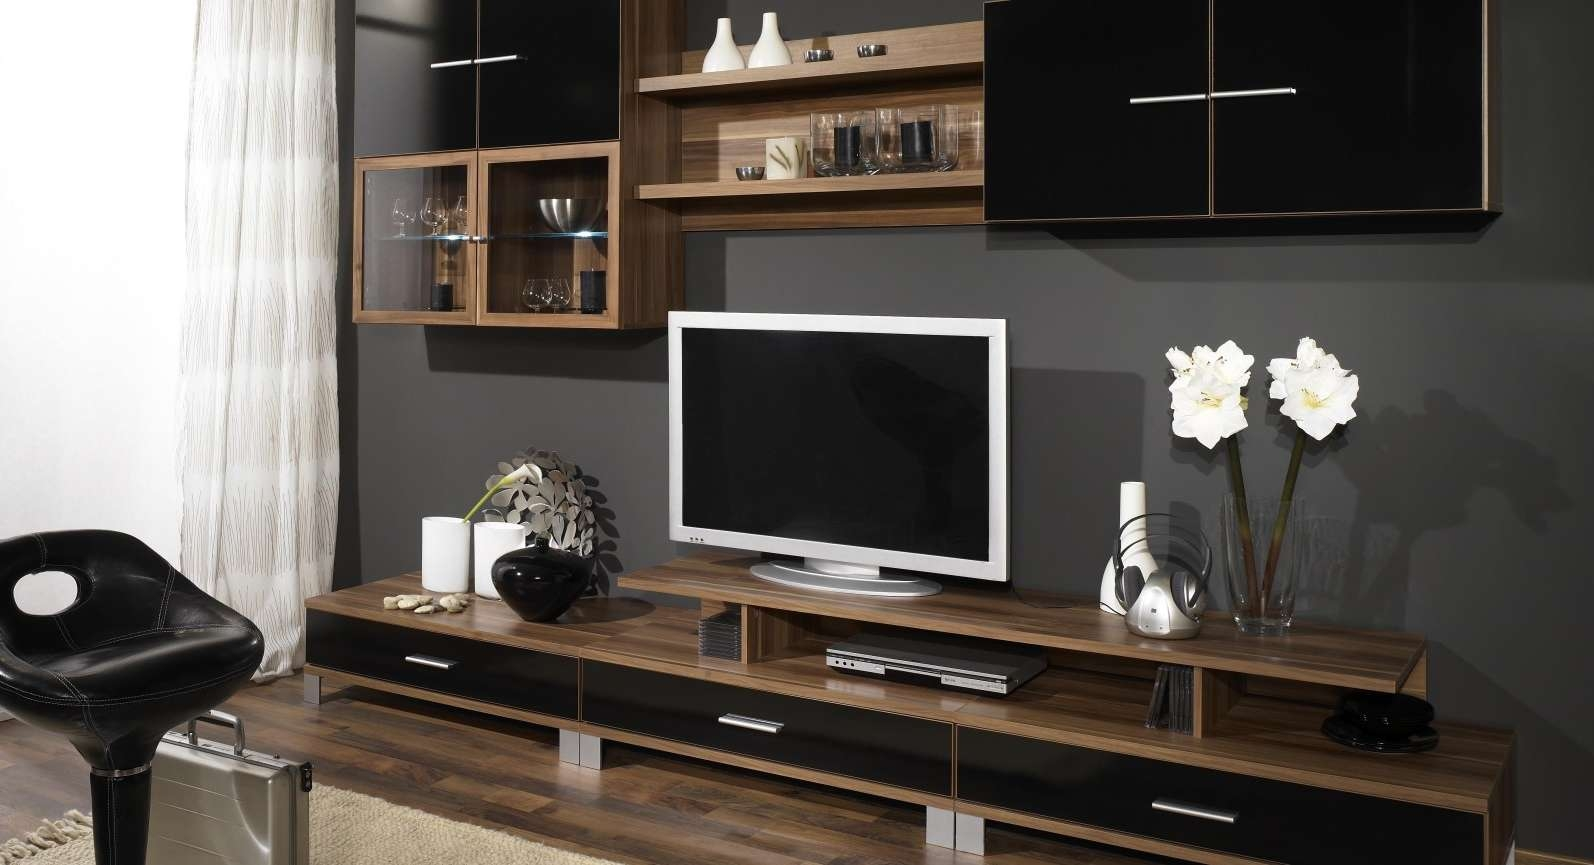 Tv : Wall Tv Cabinet Stunning Bespoke Tv Cabinets Modern Wall Within Bespoke Tv Cabinets (View 18 of 20)